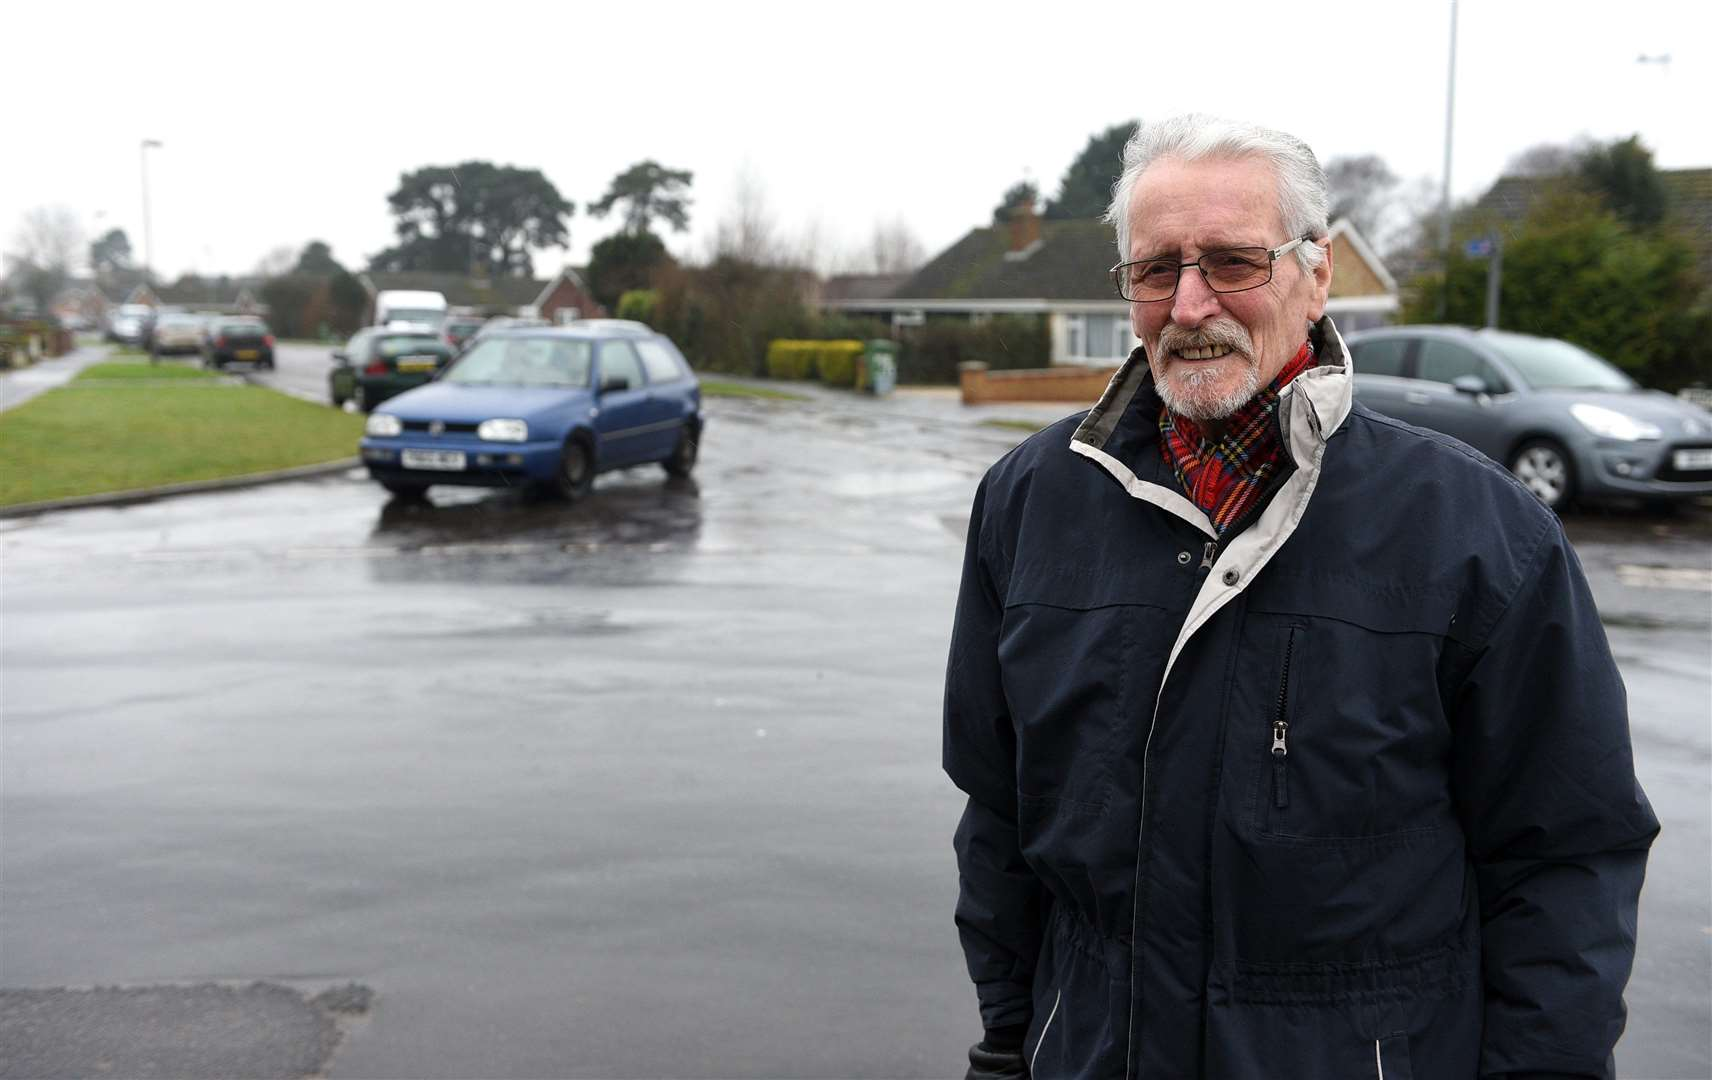 Colin Bulley who is concerned about parking and the road near Clackclose School Donwham Market. (43946543)